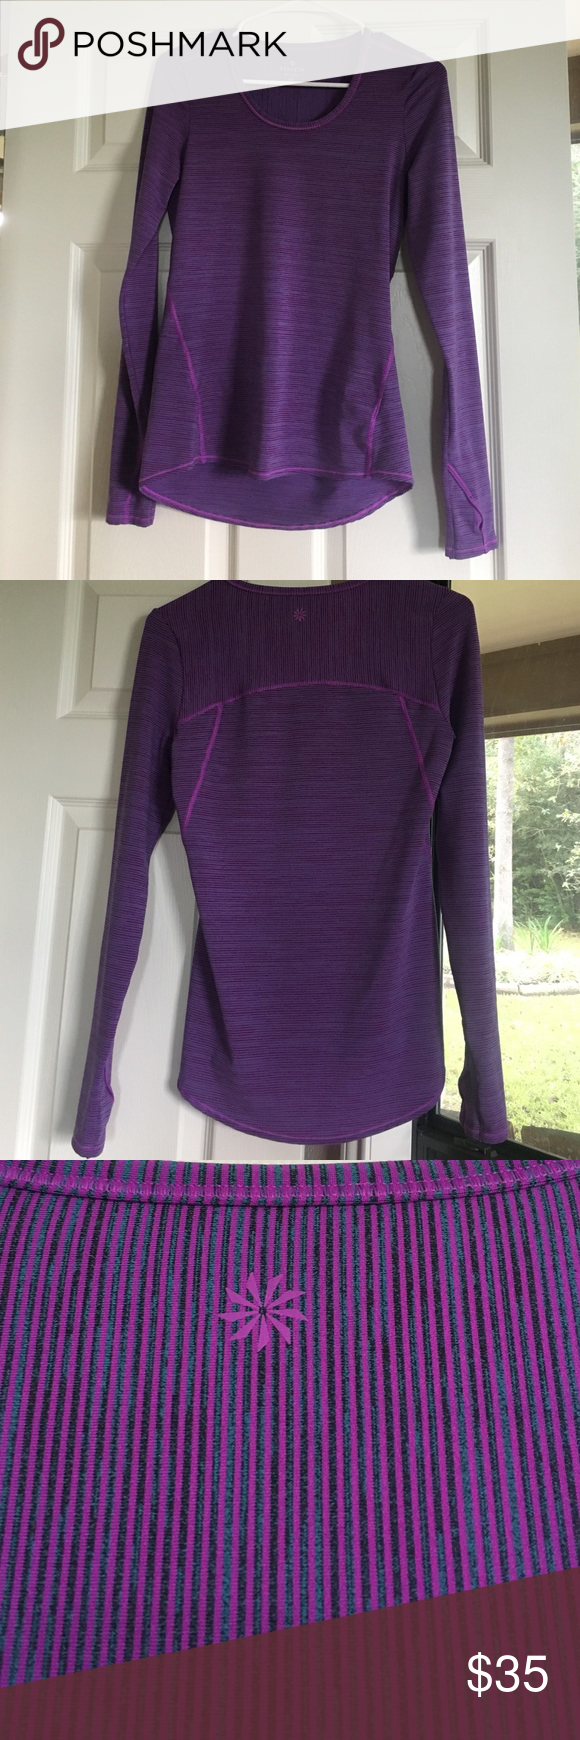 Athleta Top Athleta Long sleeve Striped Chia Top - XS - in excellent condition. Only worn once. Athleta Tops Tees - Long Sleeve